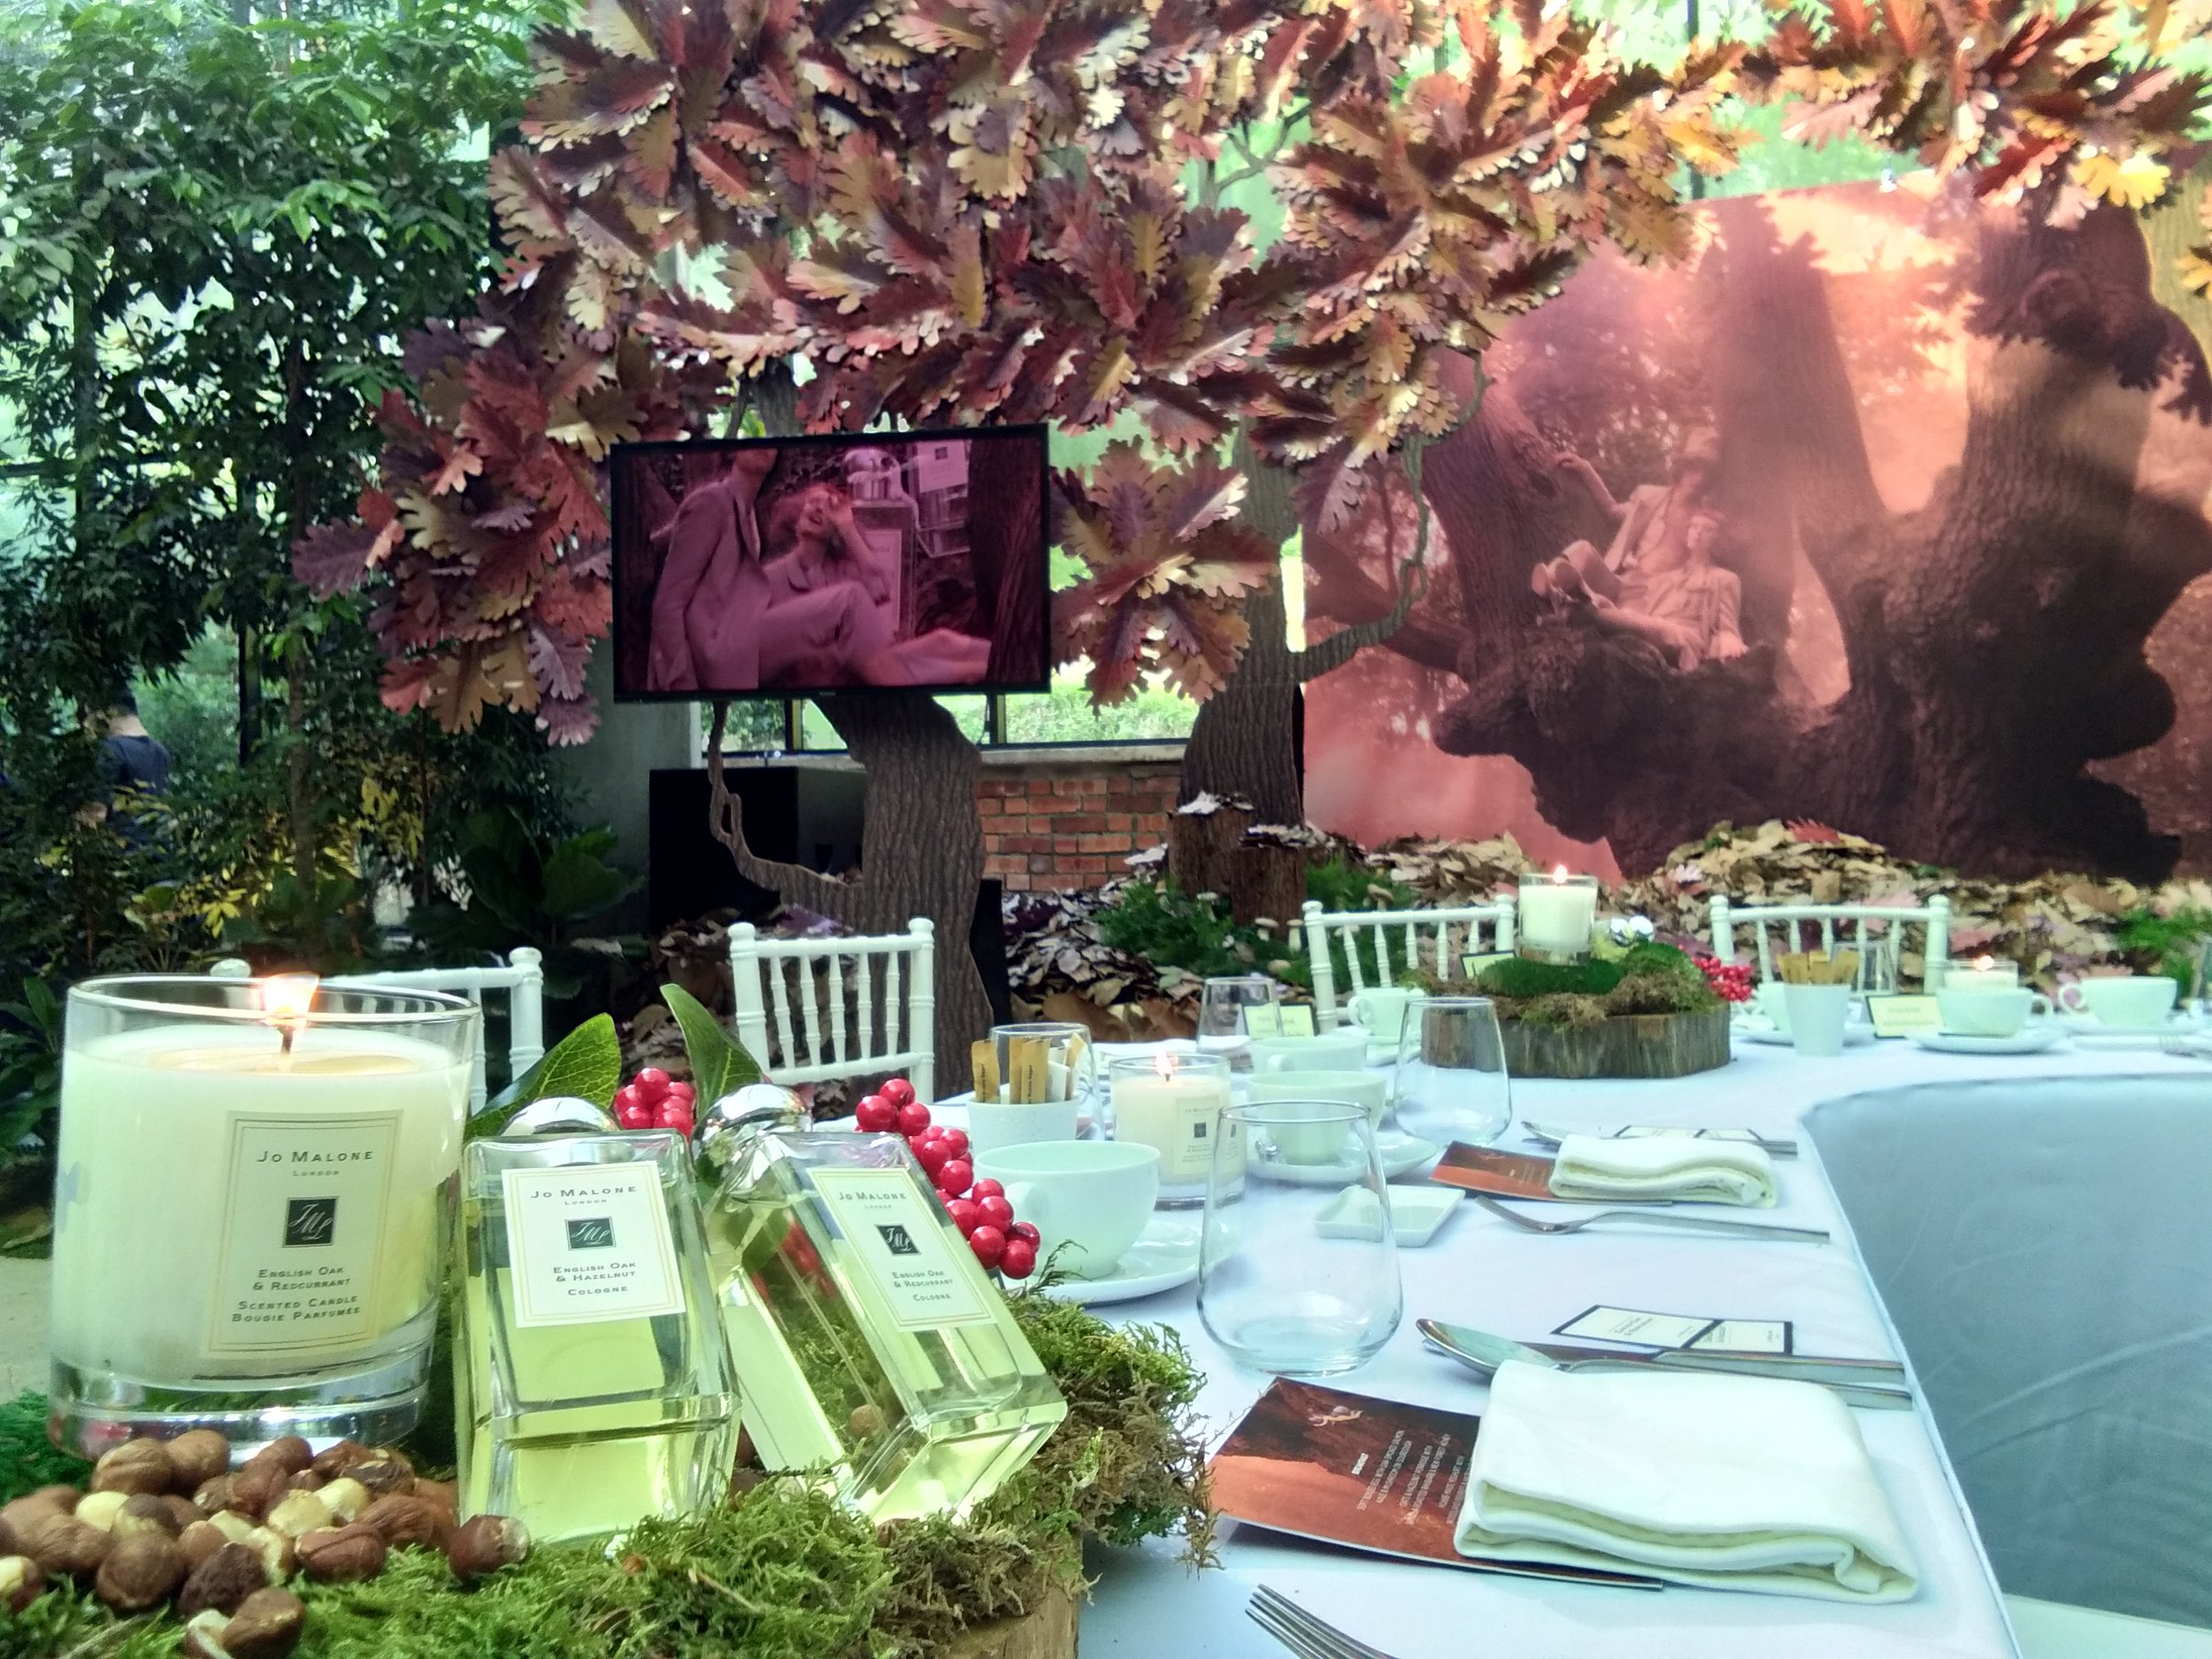 An enchanted Autumn soiree brought guests together amongst golden fall leaves,enveloped by the divine scent of Jo Malone's English Oak.